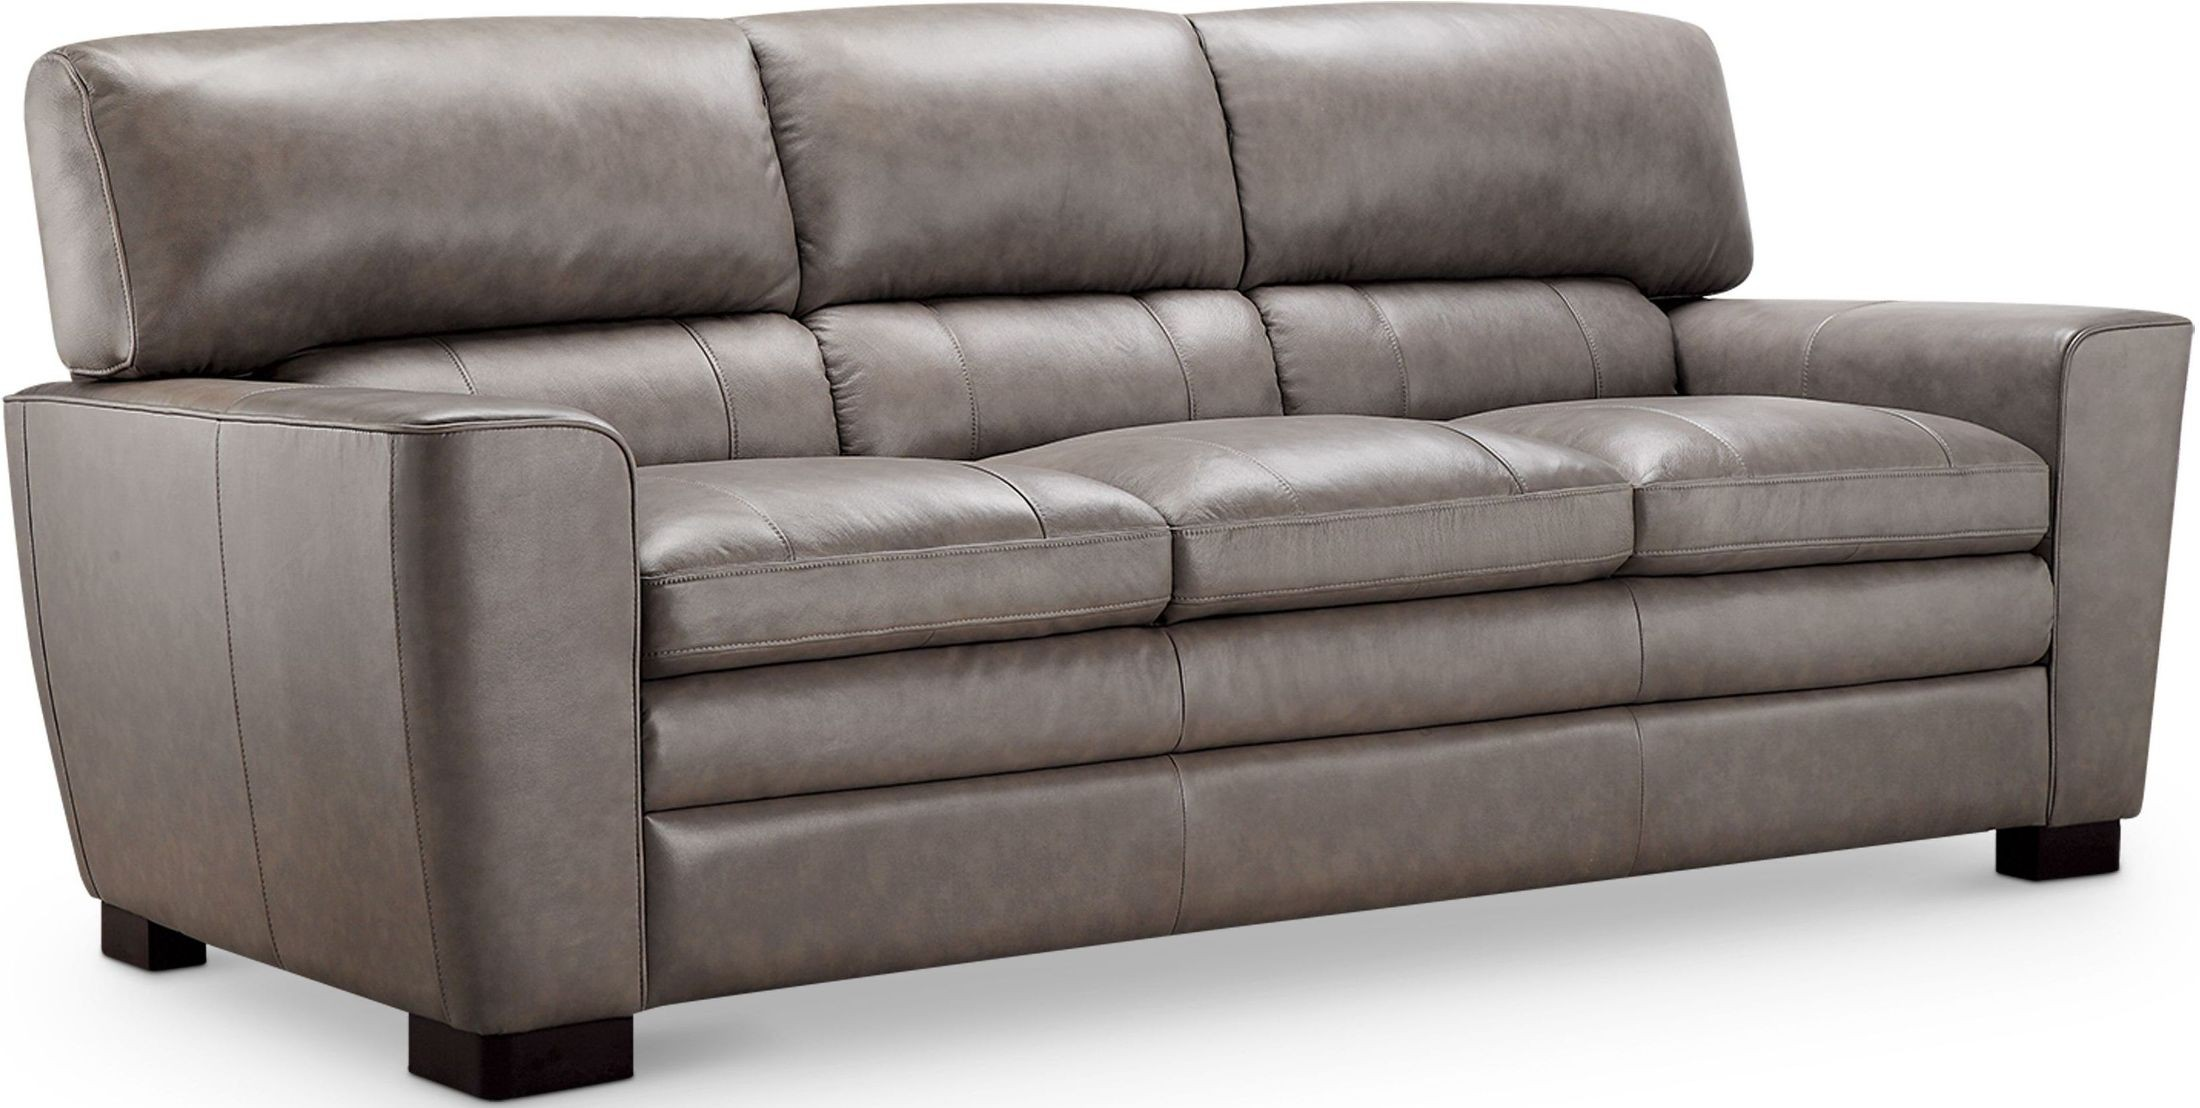 Cambria Wilson Gray Leather Sofa from Luxe Leather